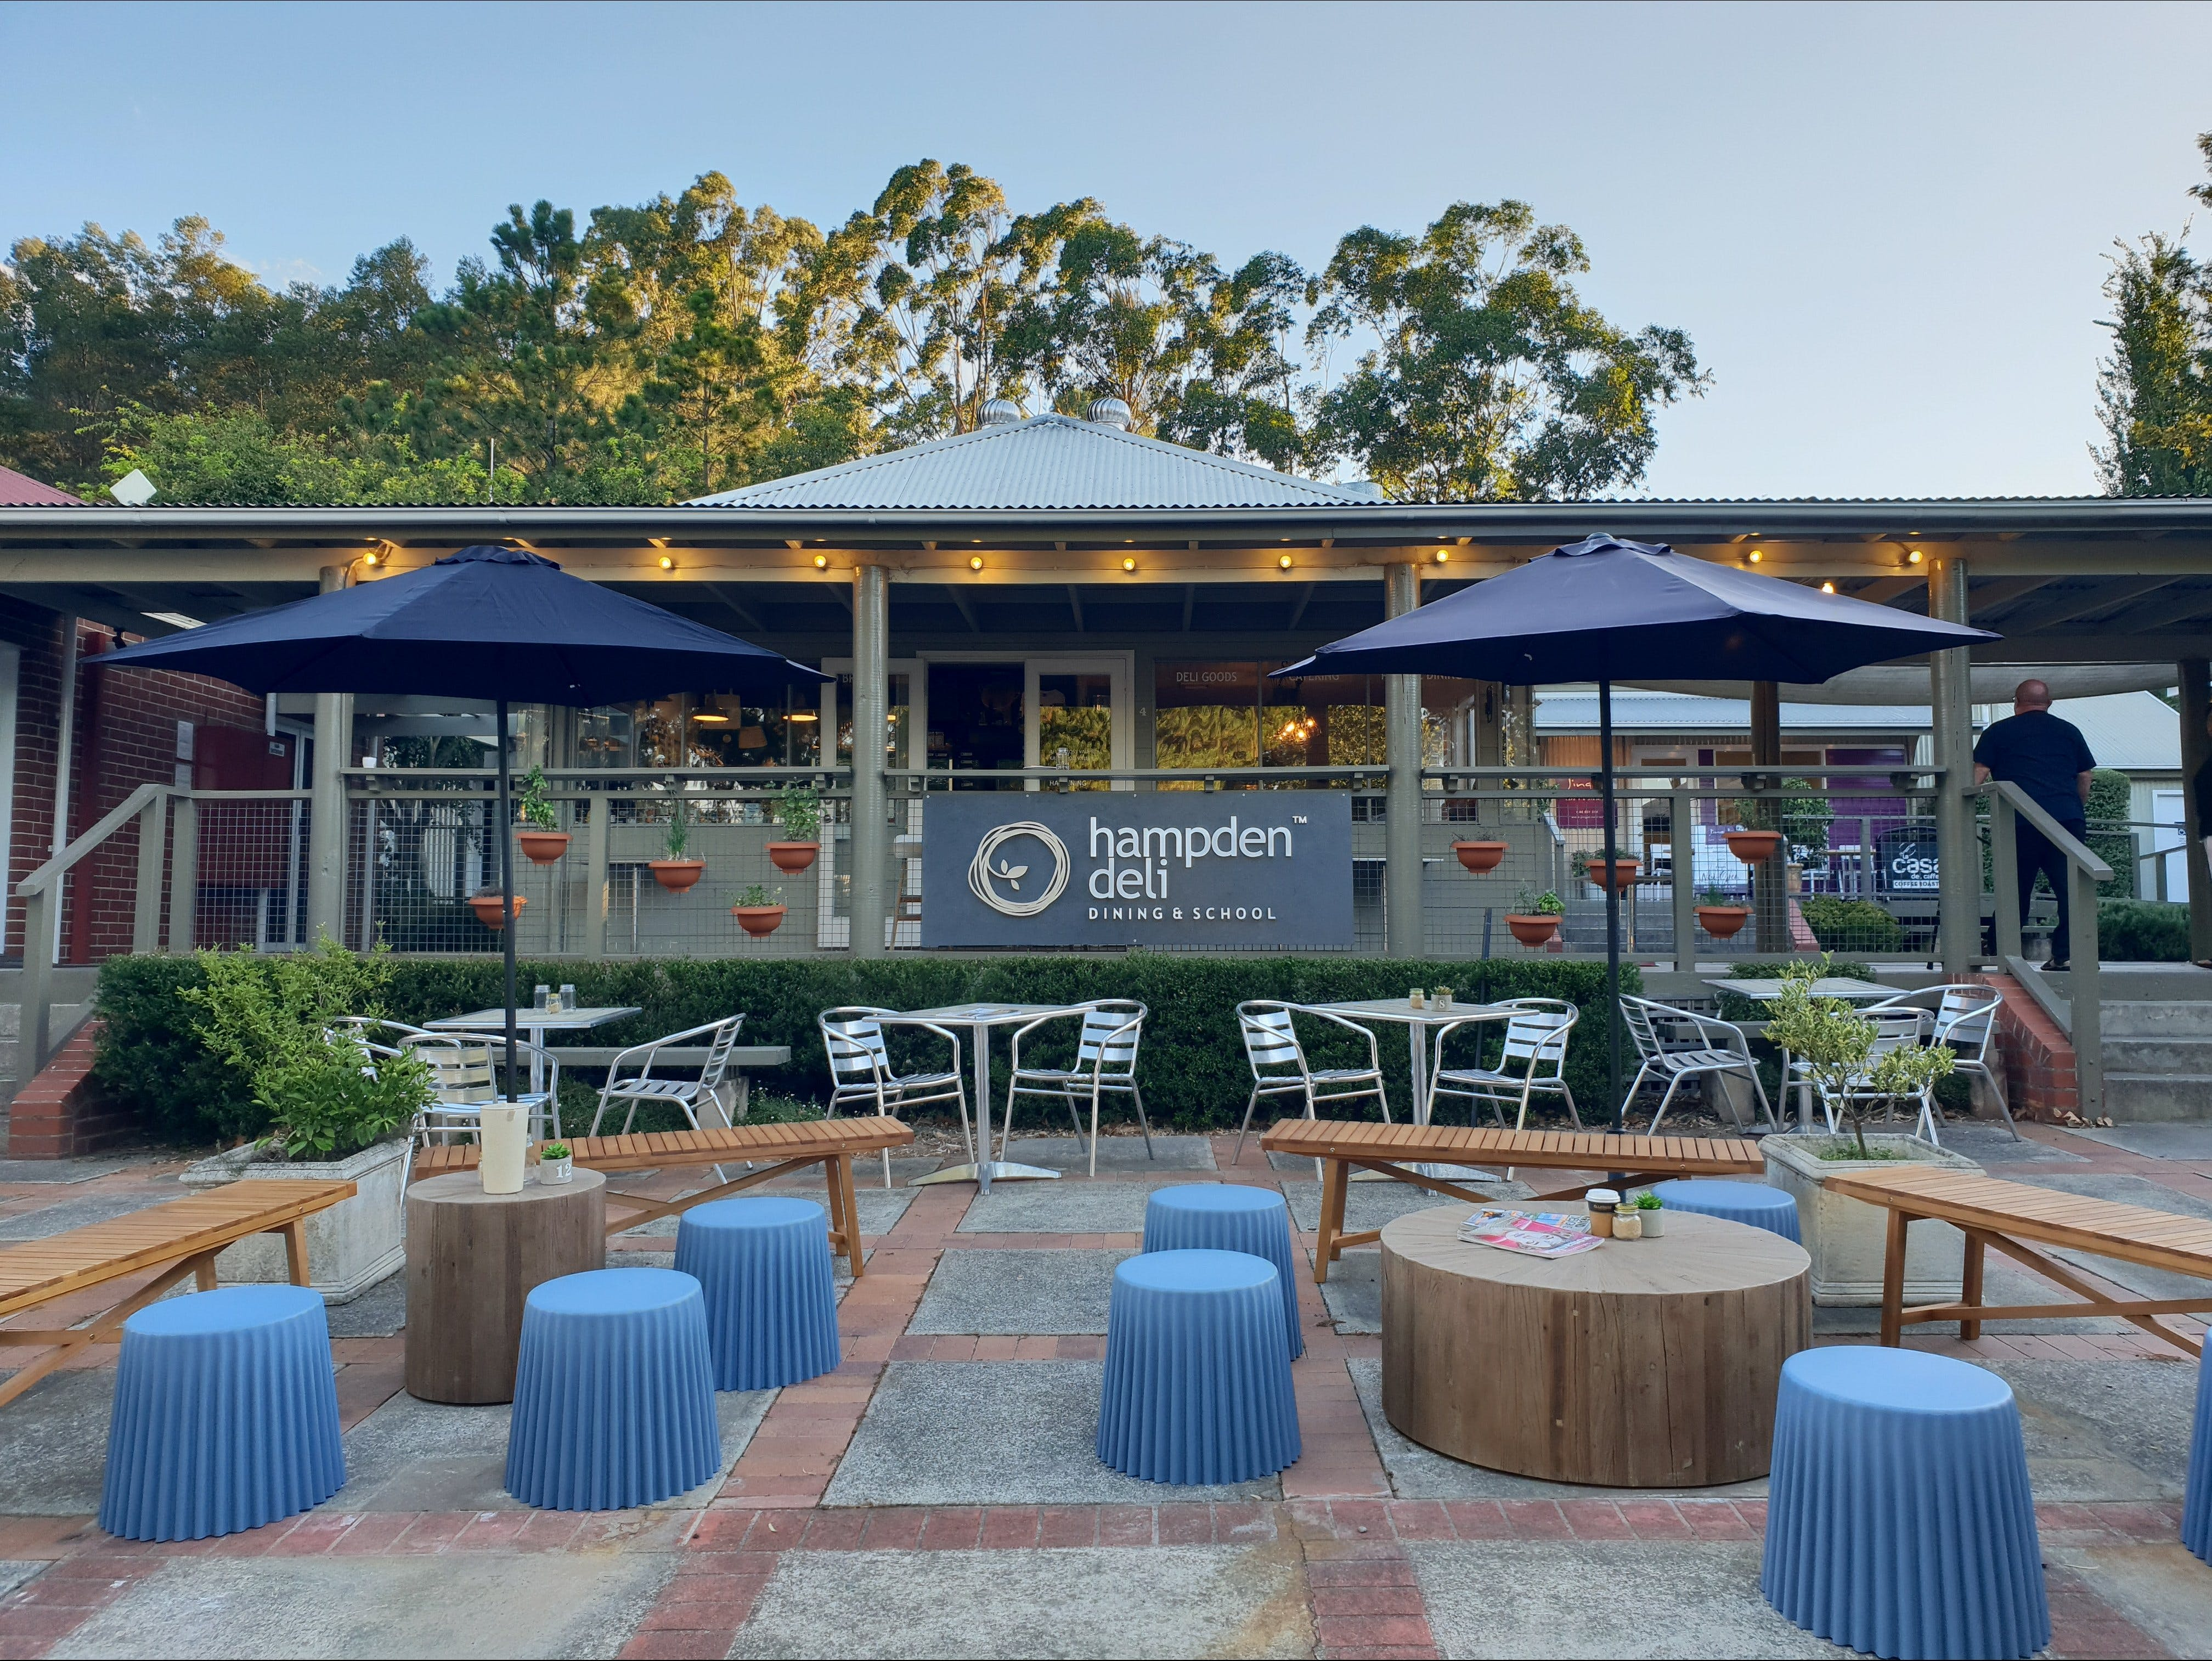 Hampden Deli Dining and School - Sydney Tourism